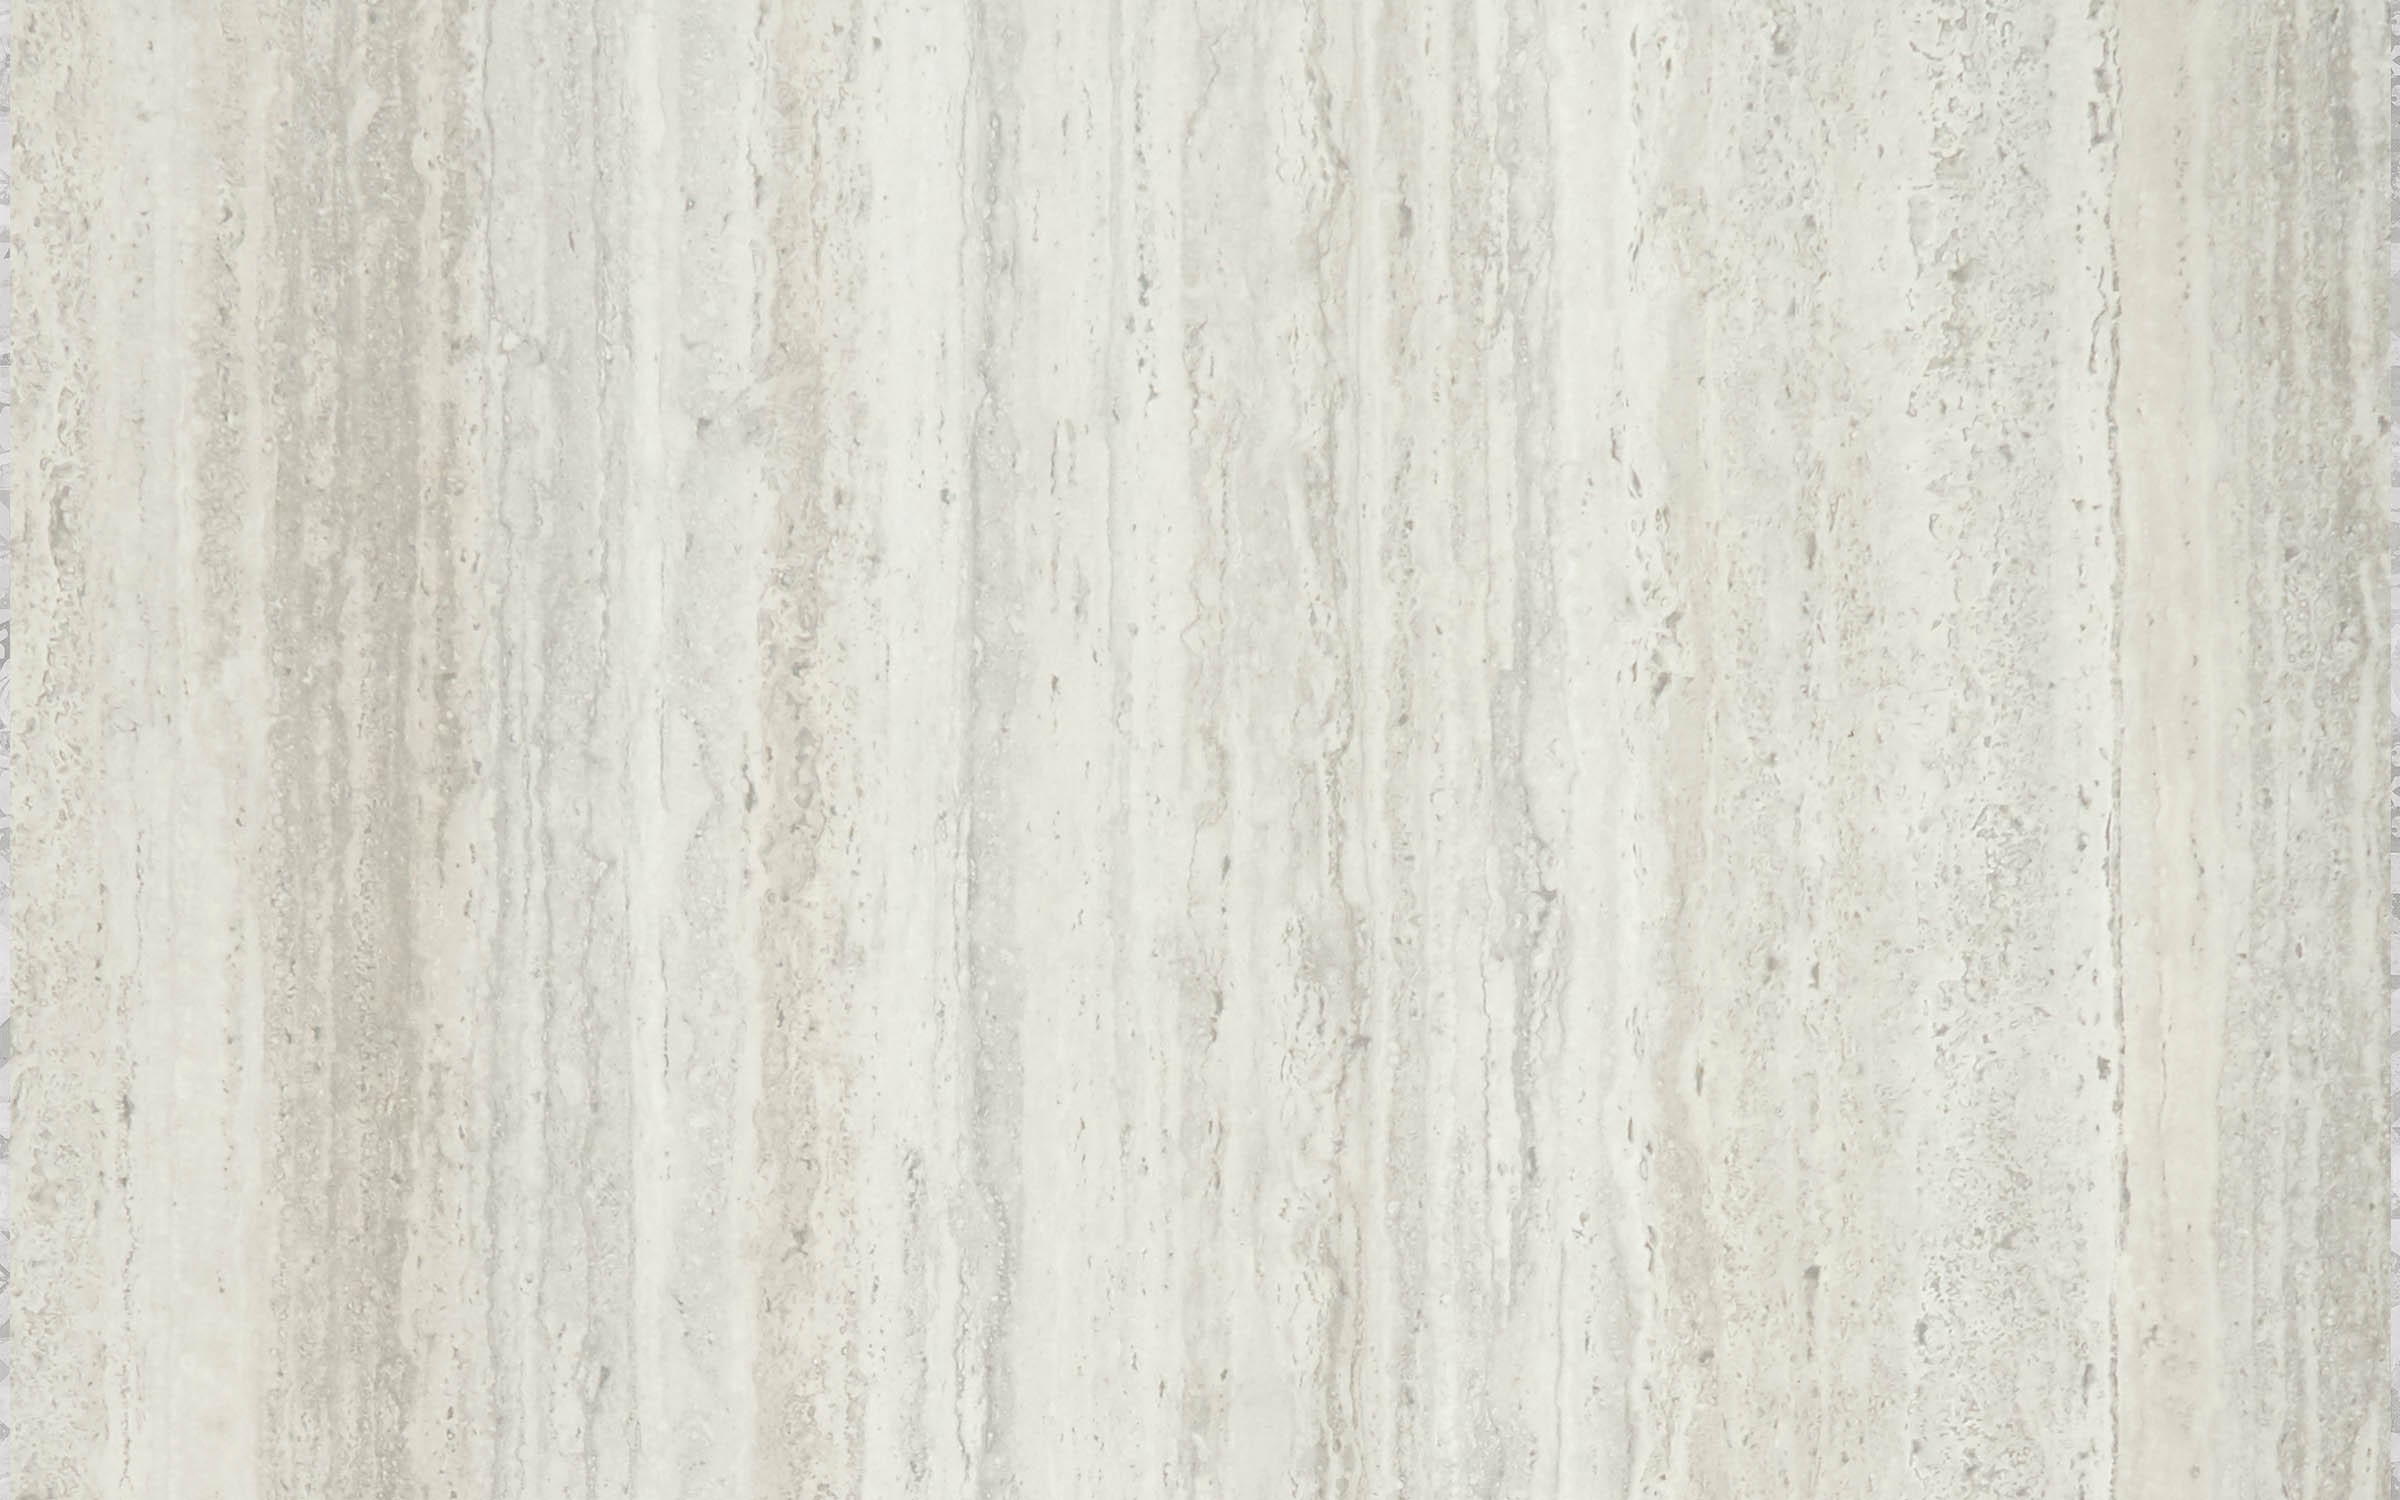 An image of Nuance Finishing Panel 160mm x 2420mm x 11mm PlatinumTravertine